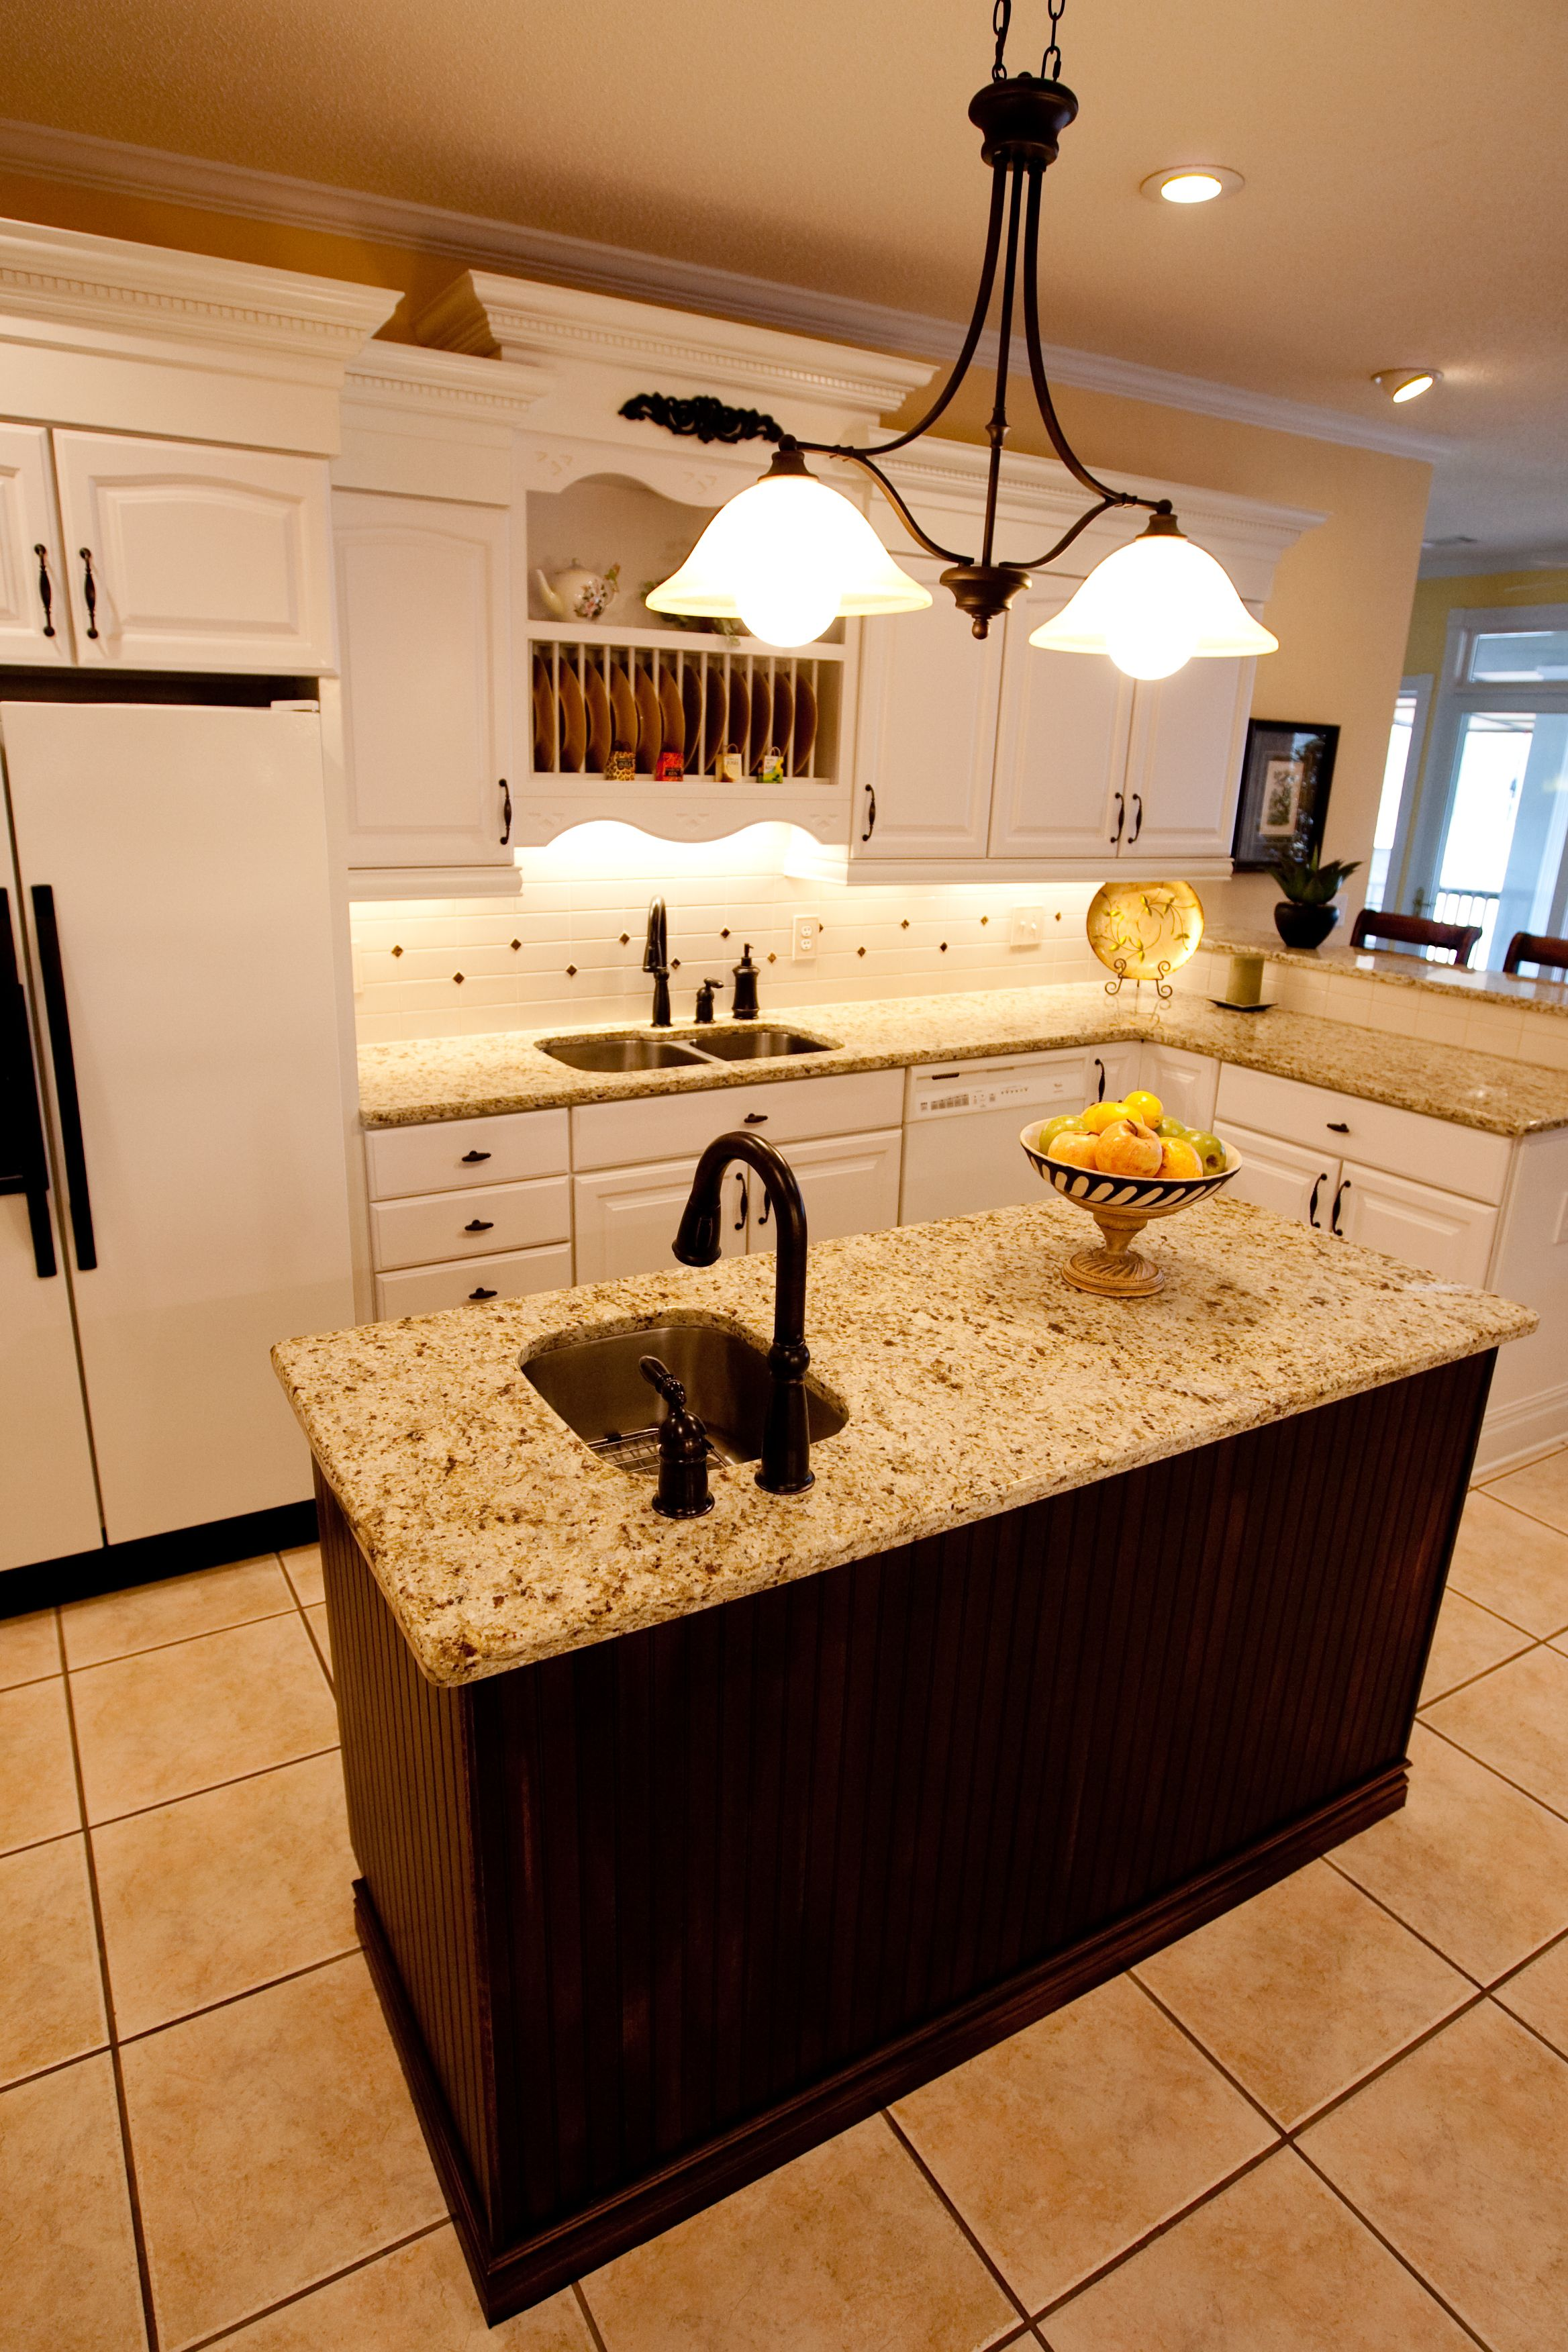 kitchens with sink in island bing images kitchen renovation pinterest sink design sinks on kitchen island ideas with sink id=85804